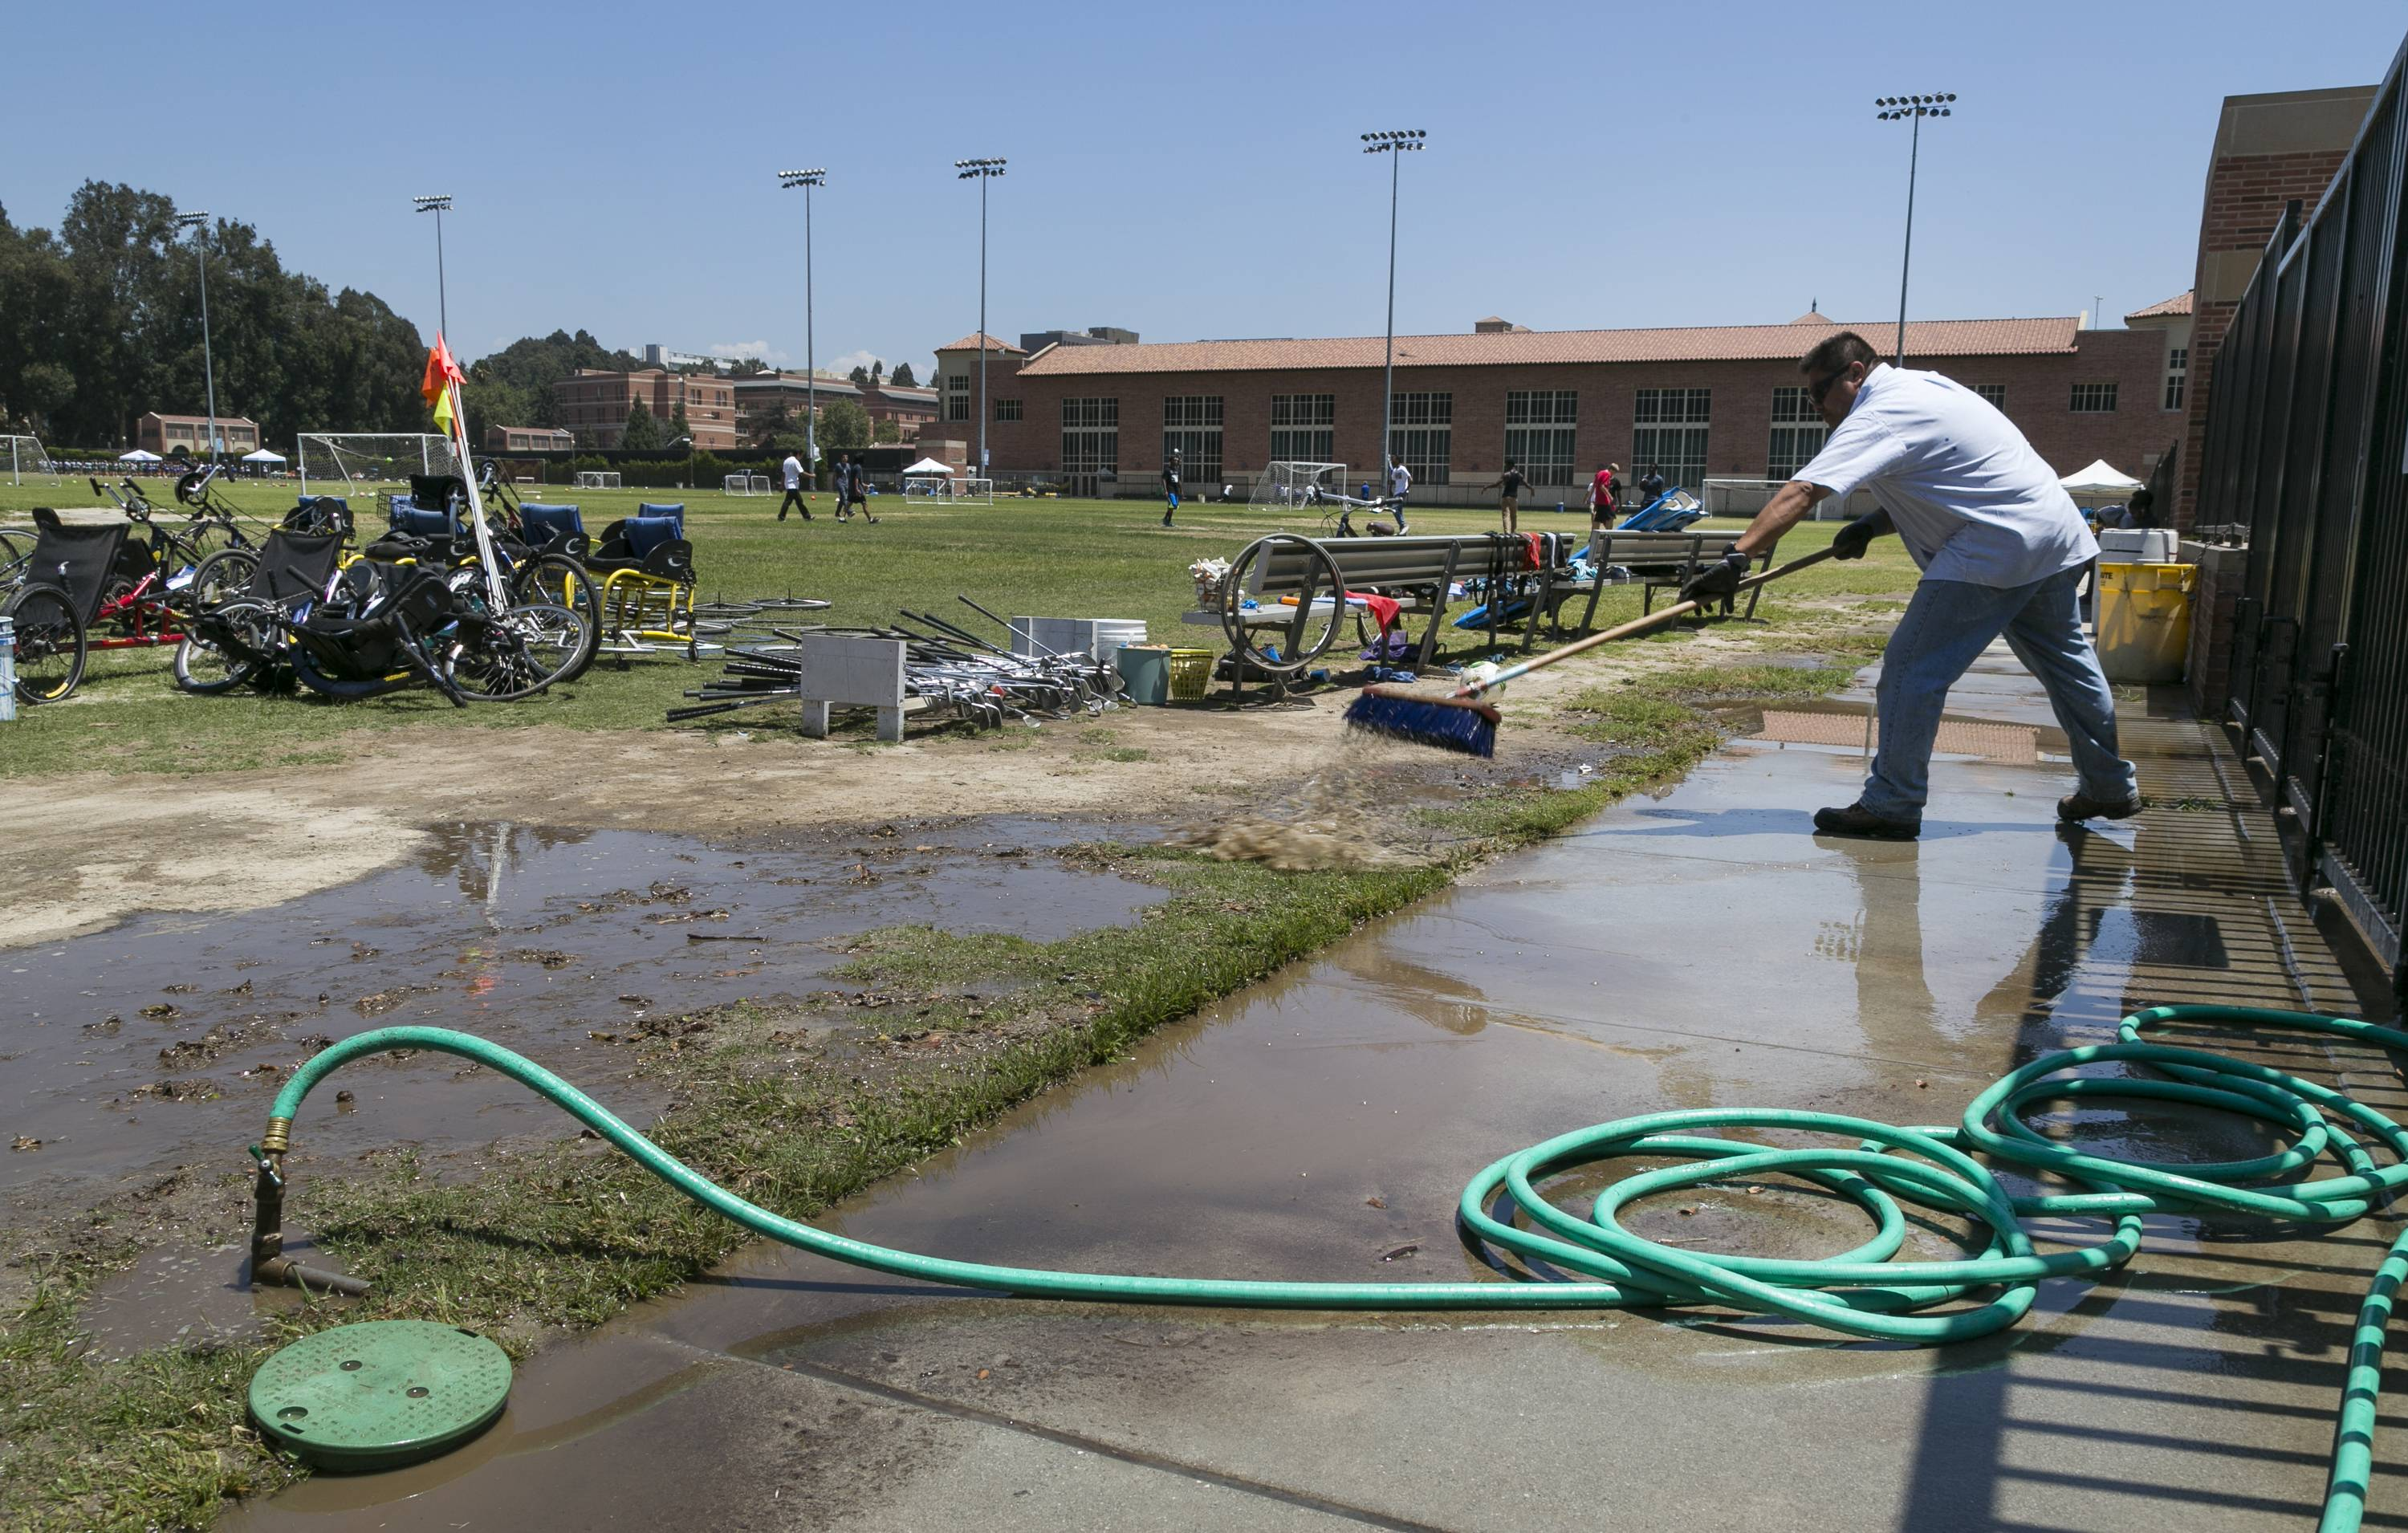 UCLA facilities management worker Hector Tovar cleans the IM Field Thursday after Tuesday's flooding from a ruptured pipe under nearby Sunset Boulevard inundated a large area of the campus in the Westwood section of Los Angeles.